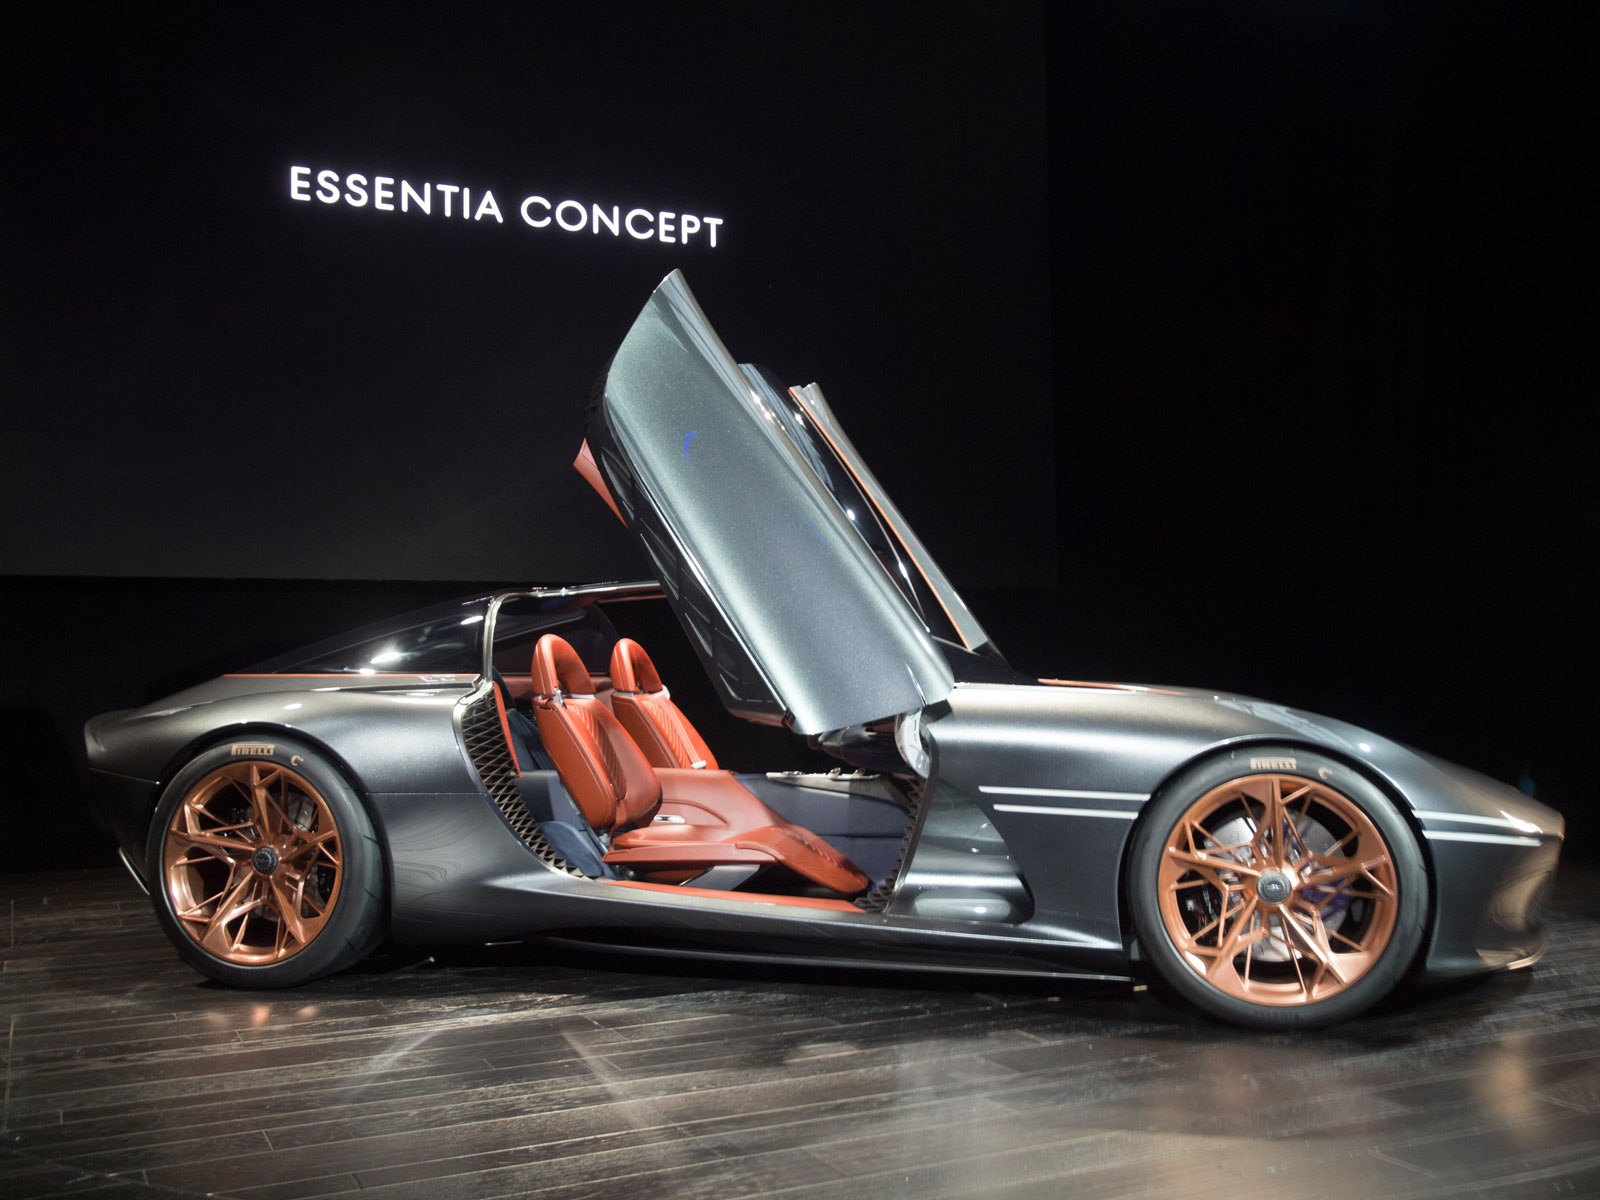 Genesis Essentia Concept at the 2018 New York Auto Show